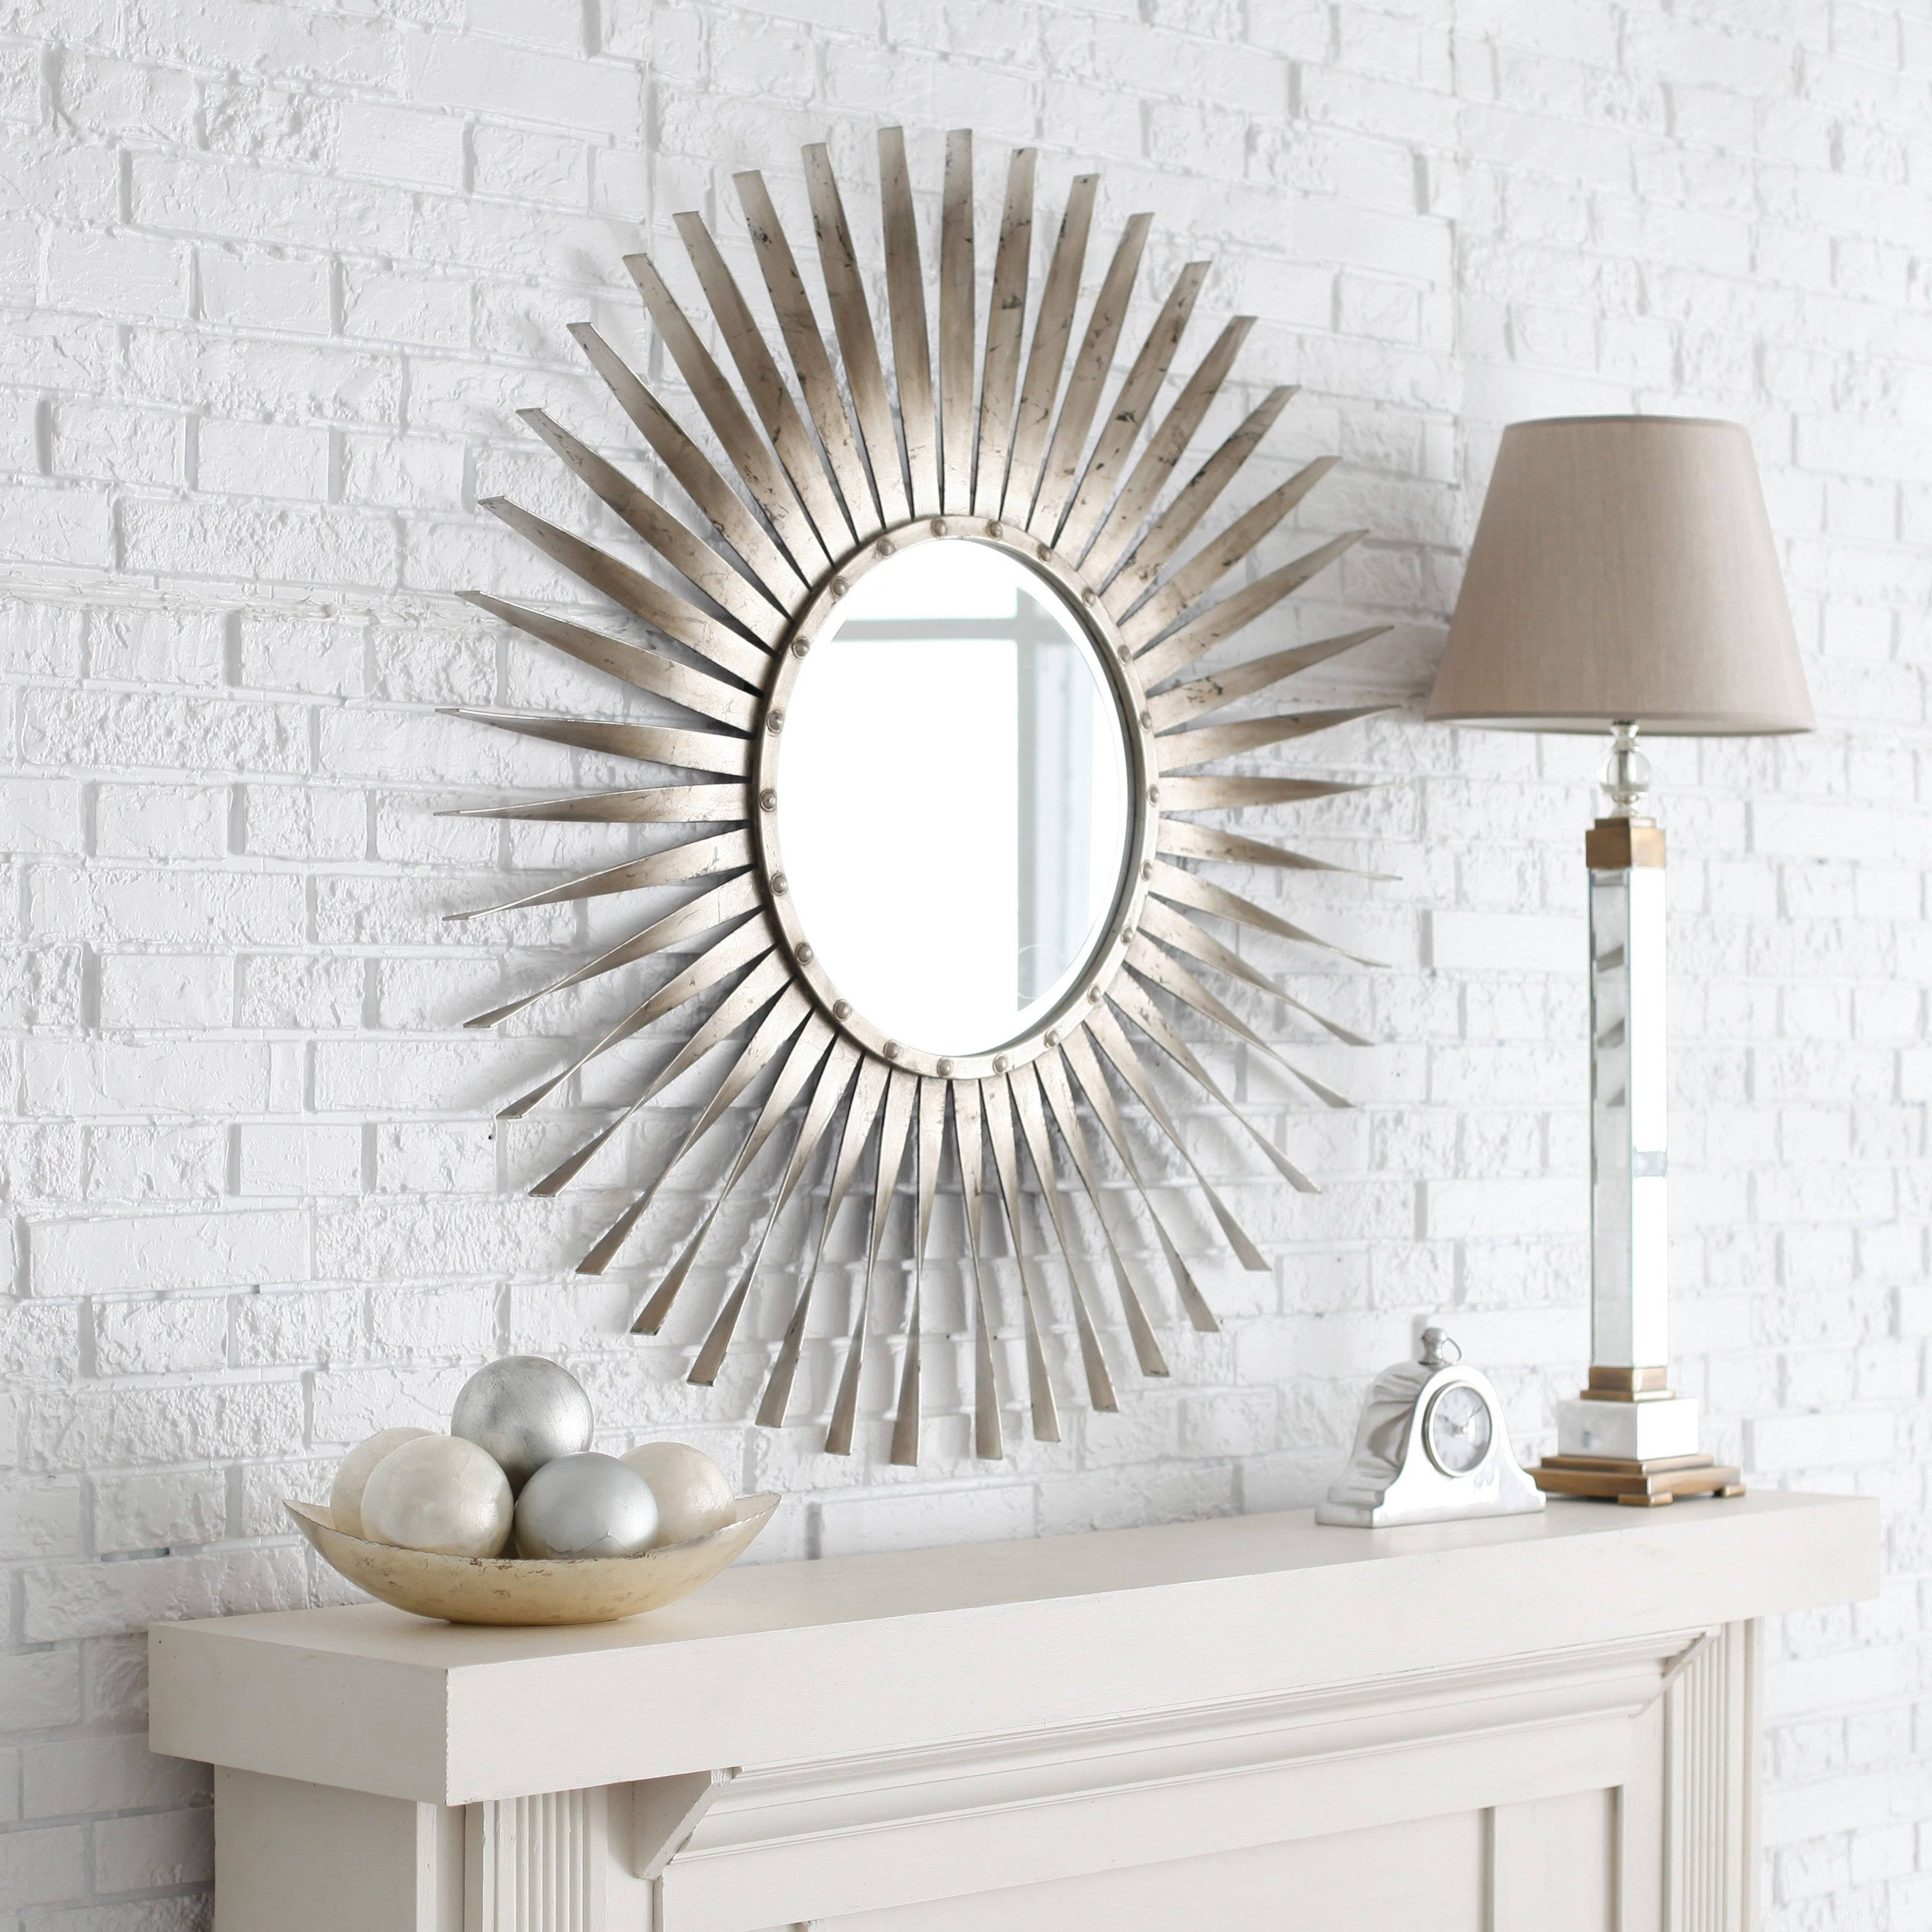 40 - 49 In. Mirrors | Hayneedle for Large Round Silver Mirrors (Image 1 of 15)